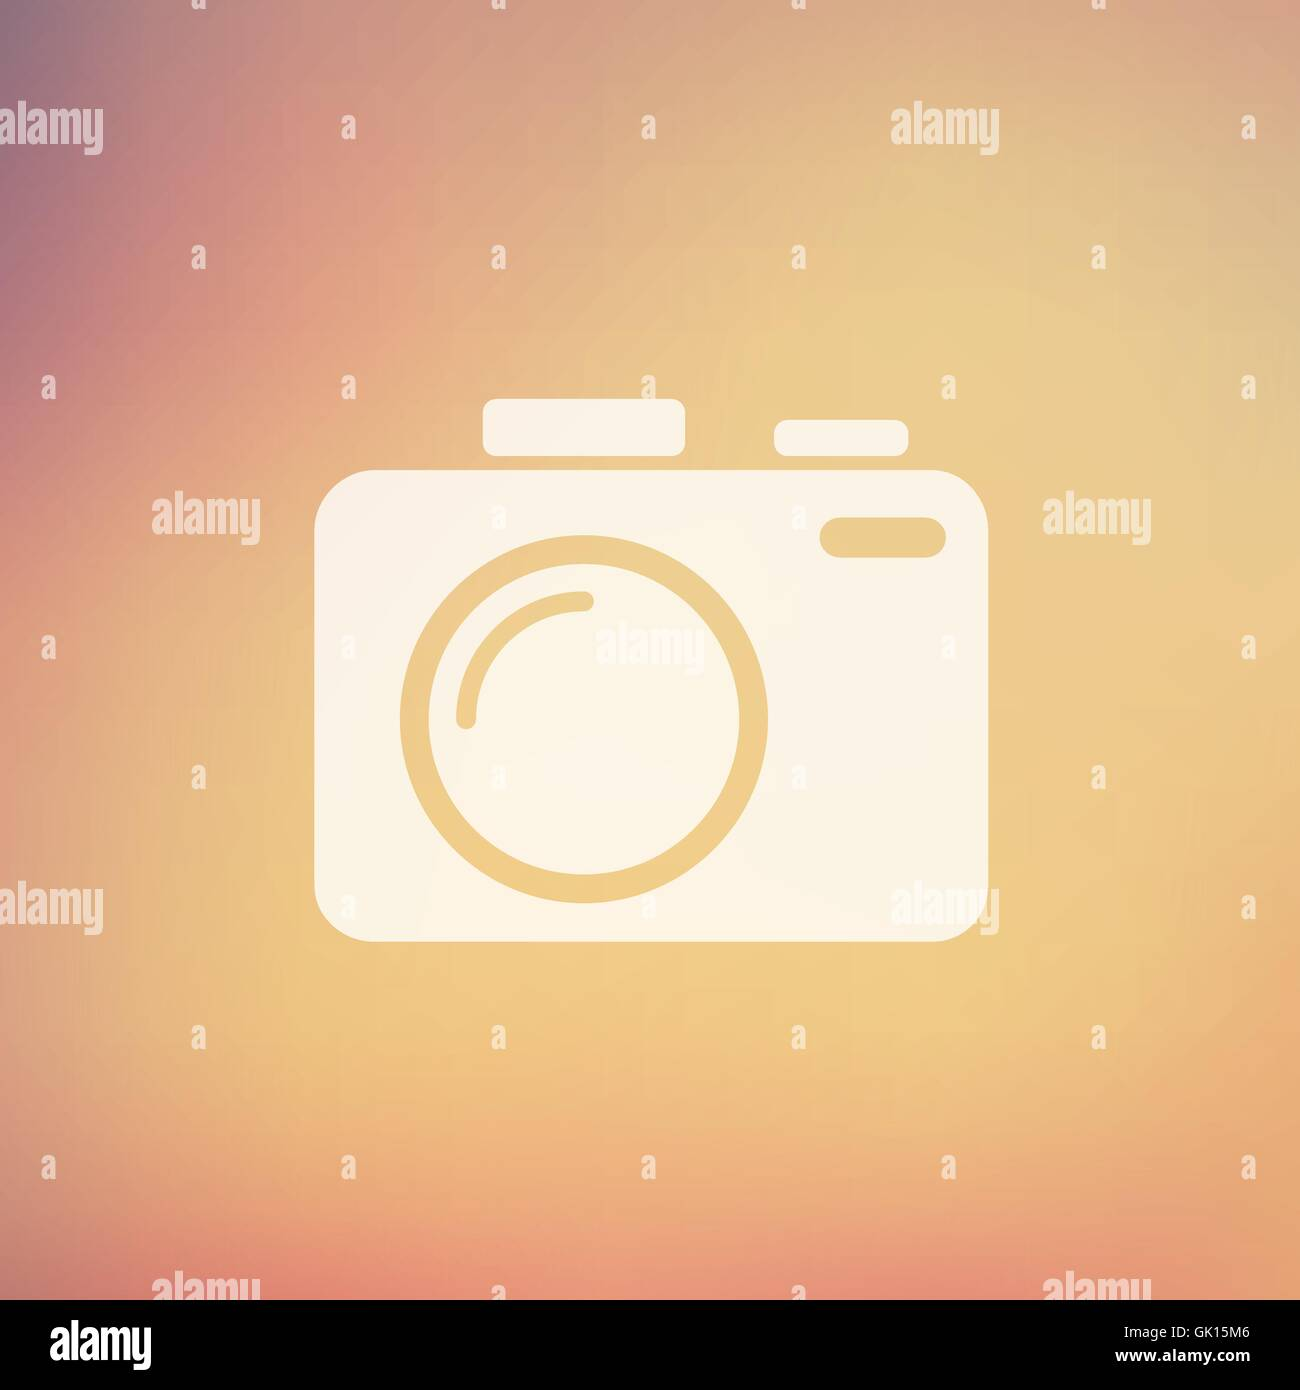 SLR Camera in flat style icon - Stock Vector